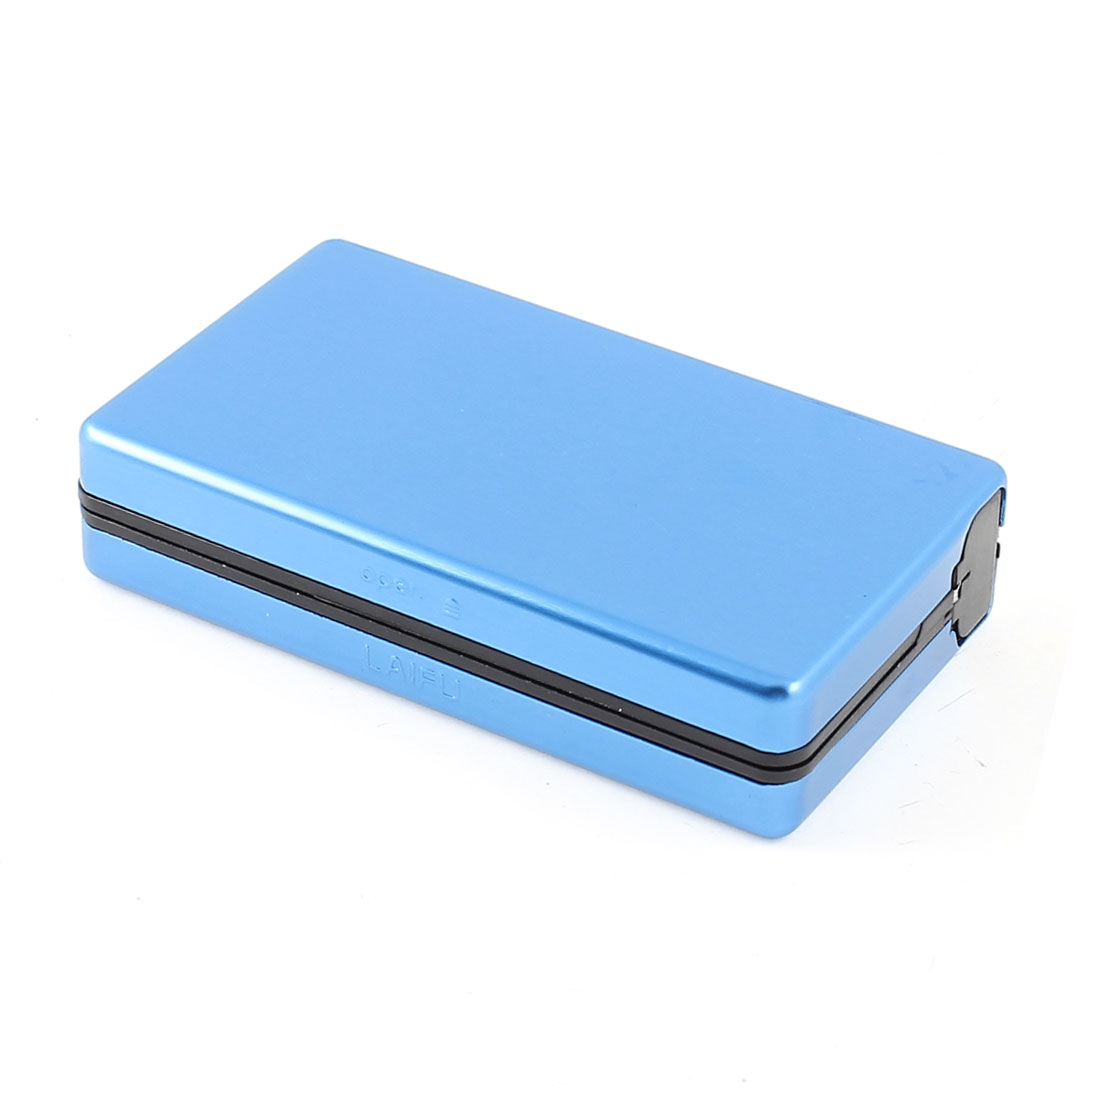 Blue Aluminum Rectangular 9cm x 5cm x 2cm Full Pack 10 Pieces Cigarette Case Holder